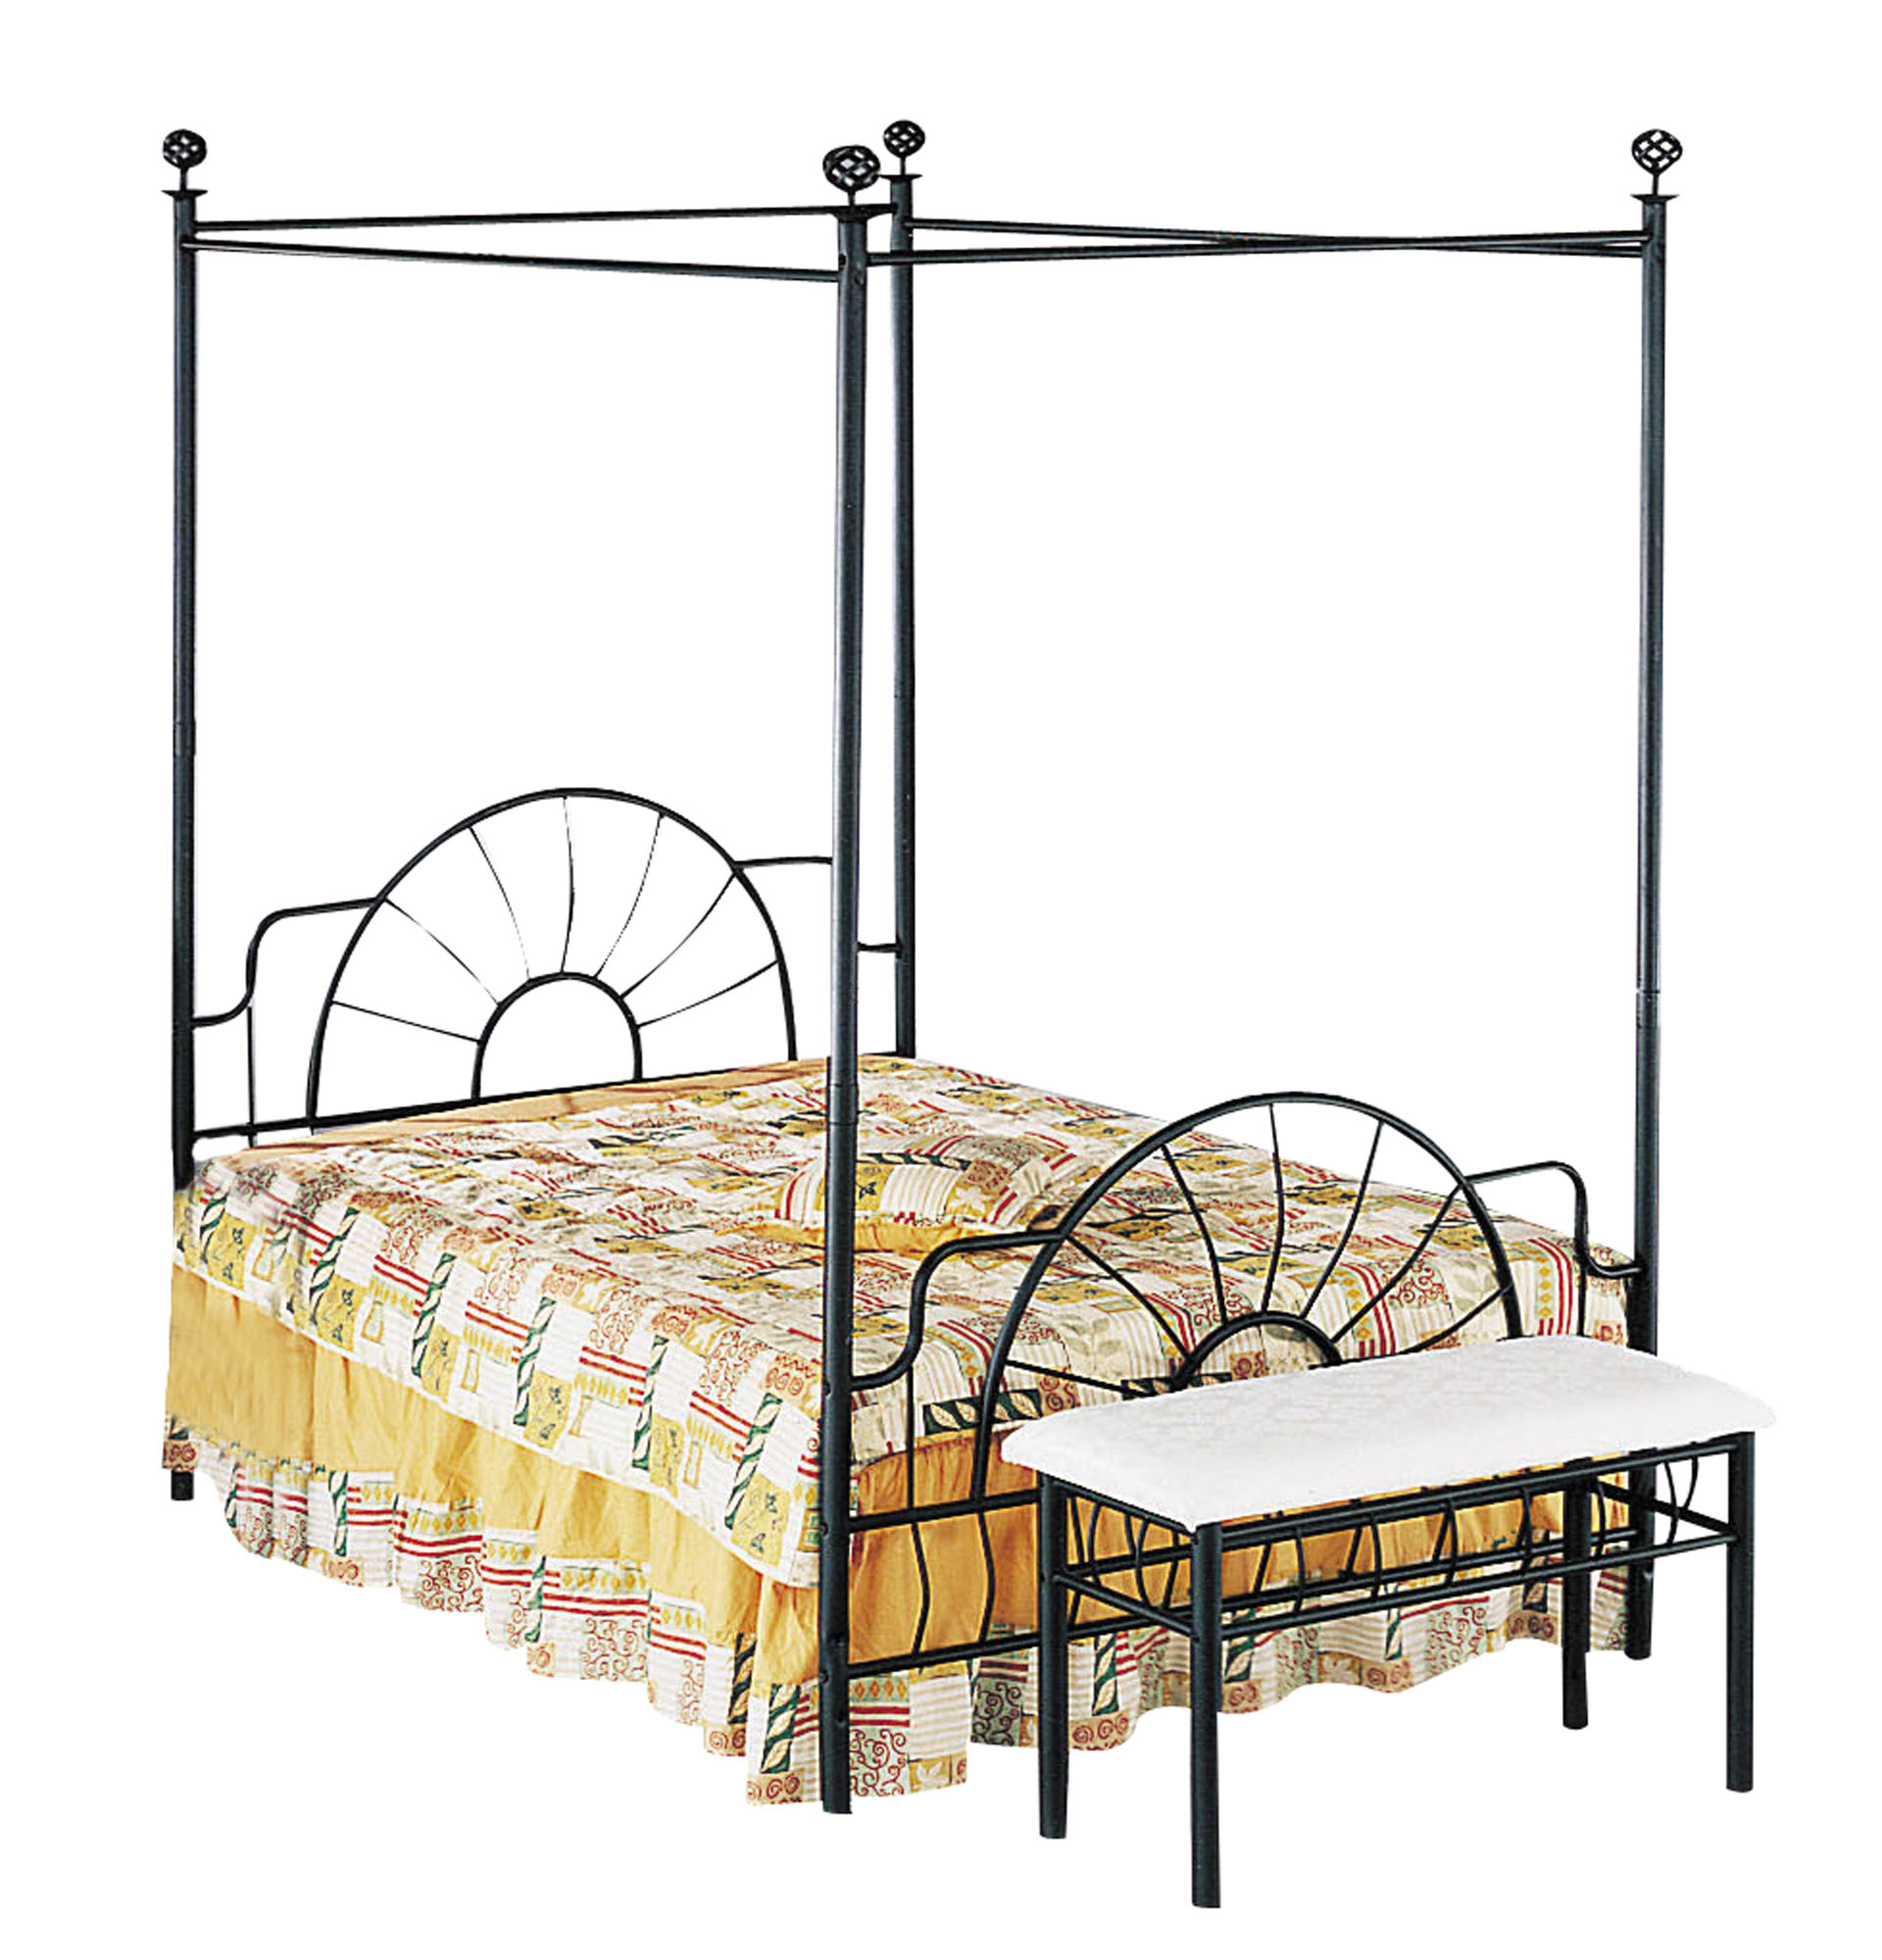 Acme Sunburst Full Canopy Bed, Rails not Included, Sandy Black by Acme Furniture